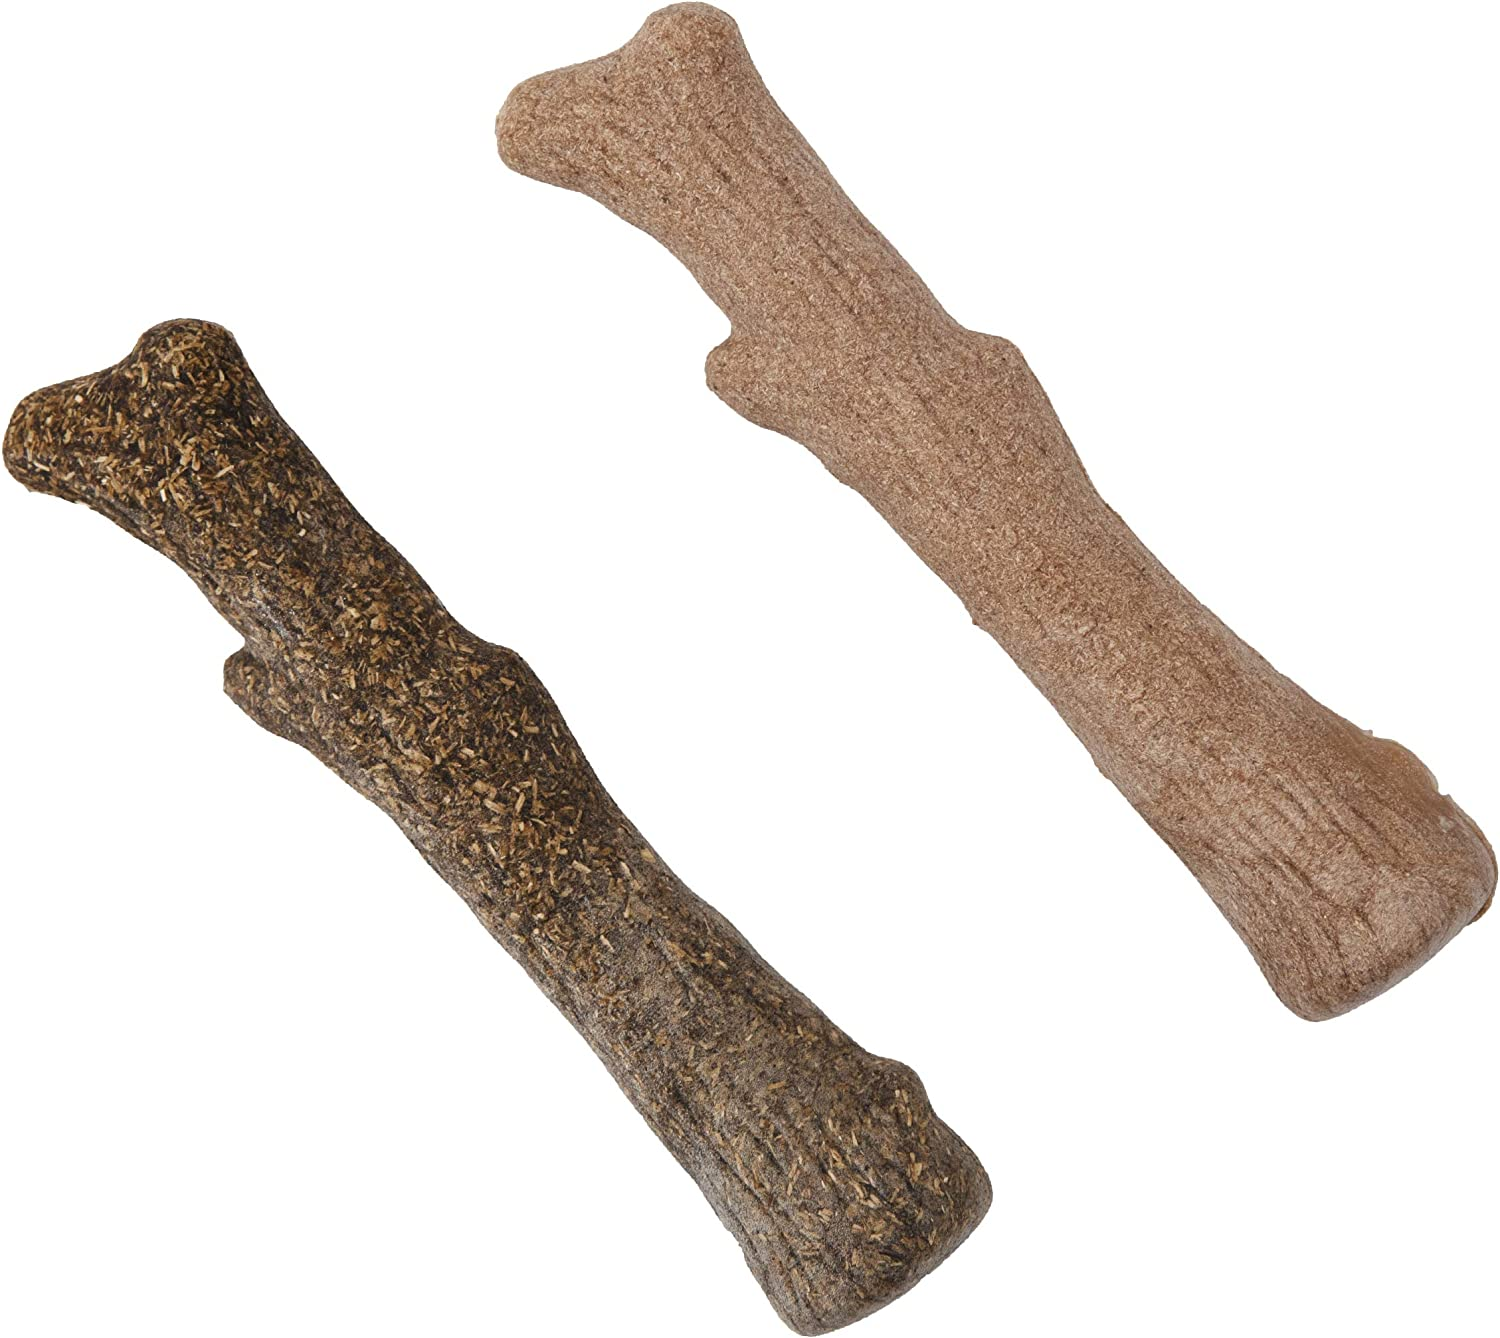 Petstages Dog Chew Toys – Safe & Long Lasting Chewable Sticks - Tough Alternative Chewing Sticks for Dogs